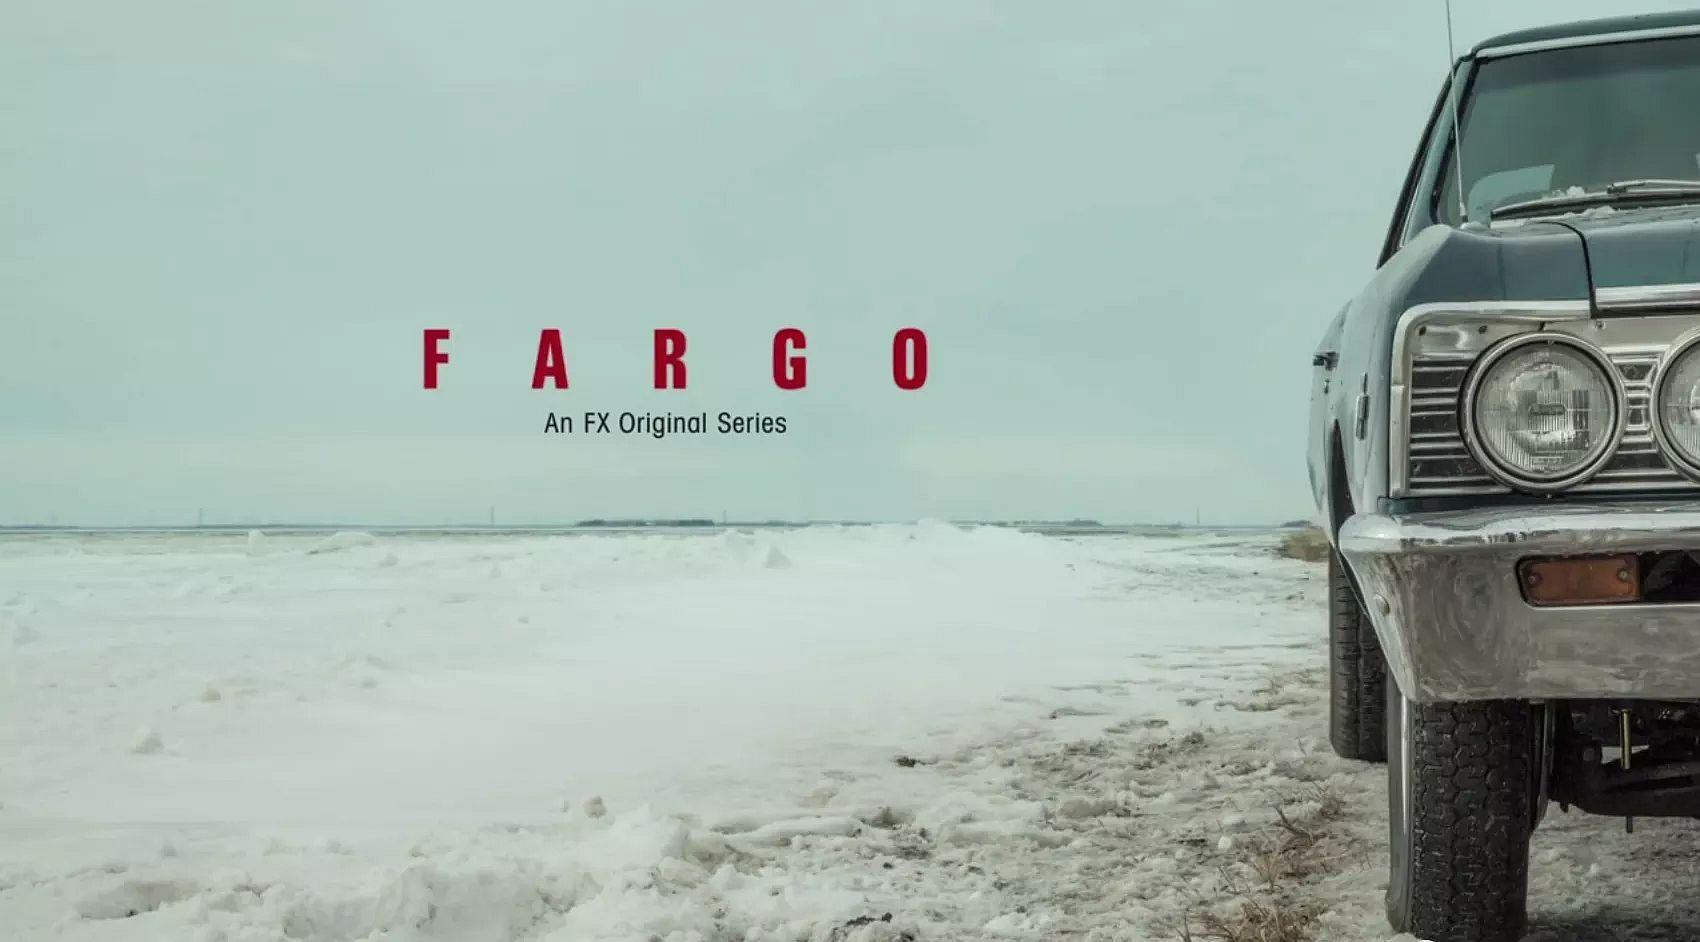 Fargo Wallpapers, Awesome 37 Fargo Wallpapers | HDQ Cover Pics FN.NG